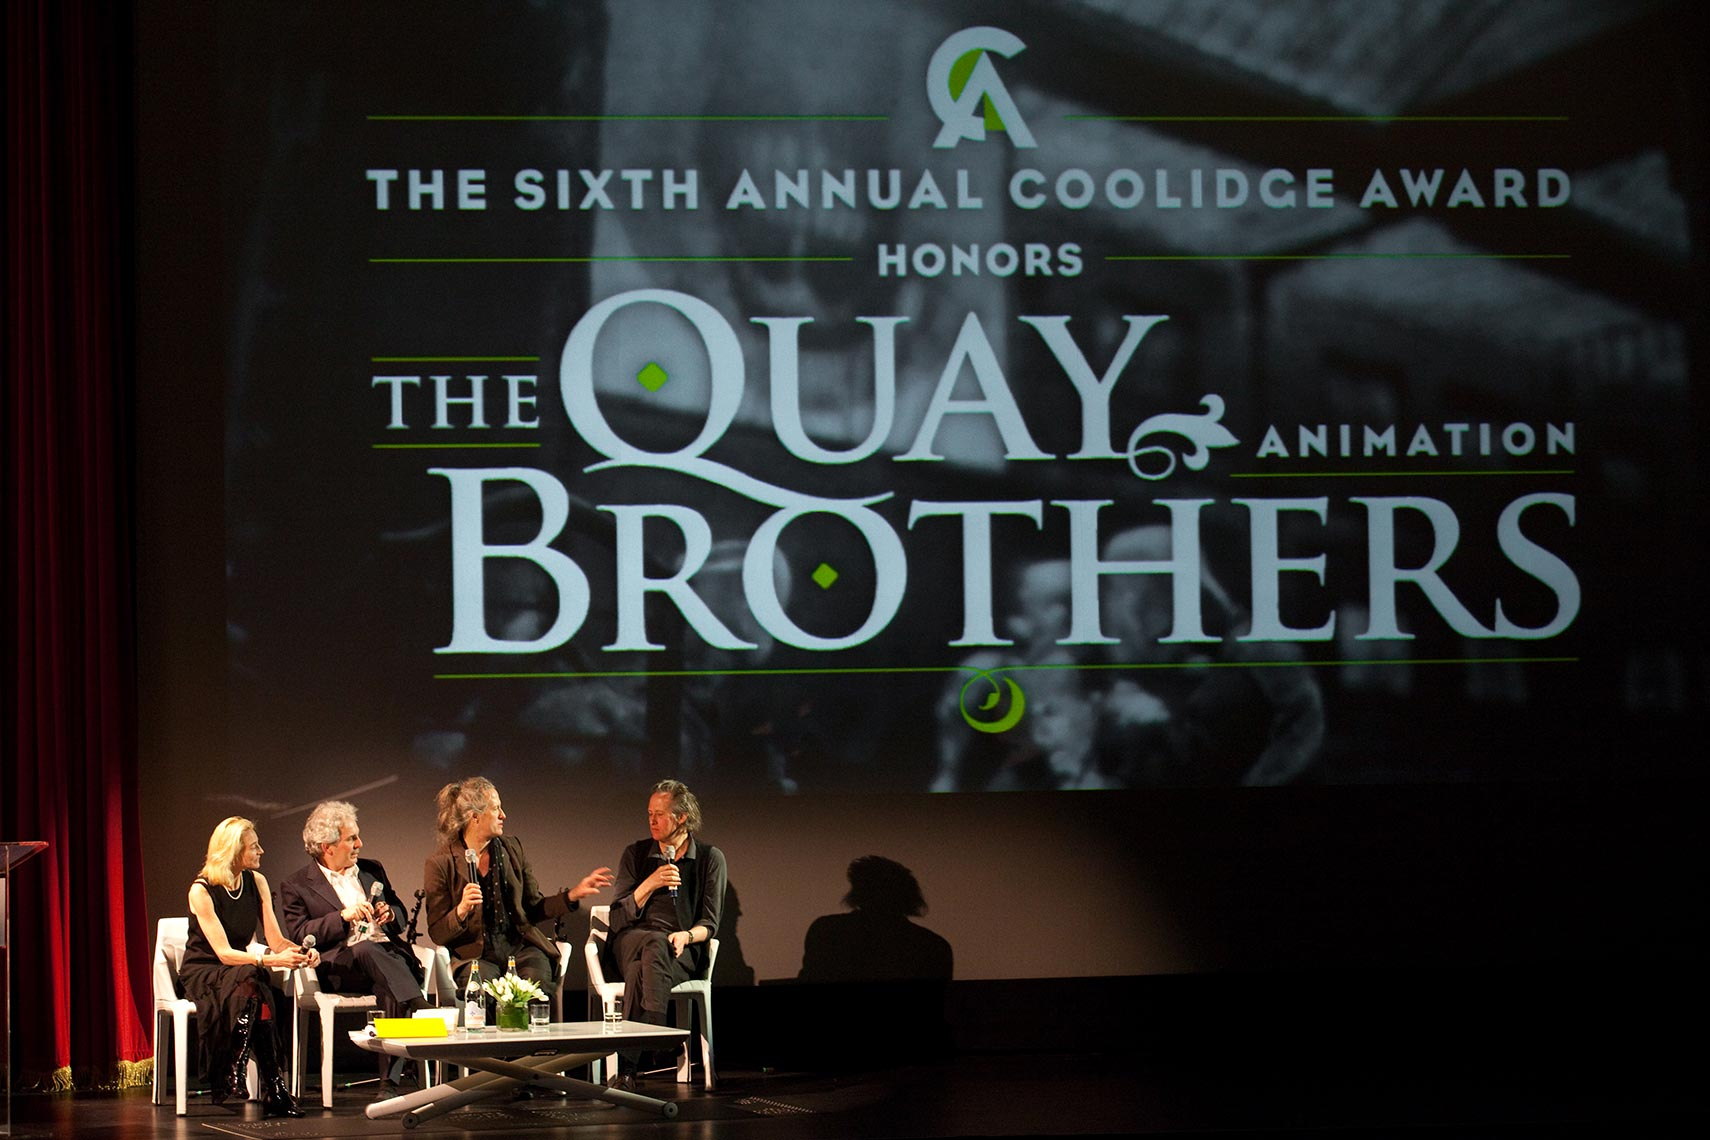 6th-Annual-Coolidge-Award-The-Quay-Brothers-Animation-Brookline